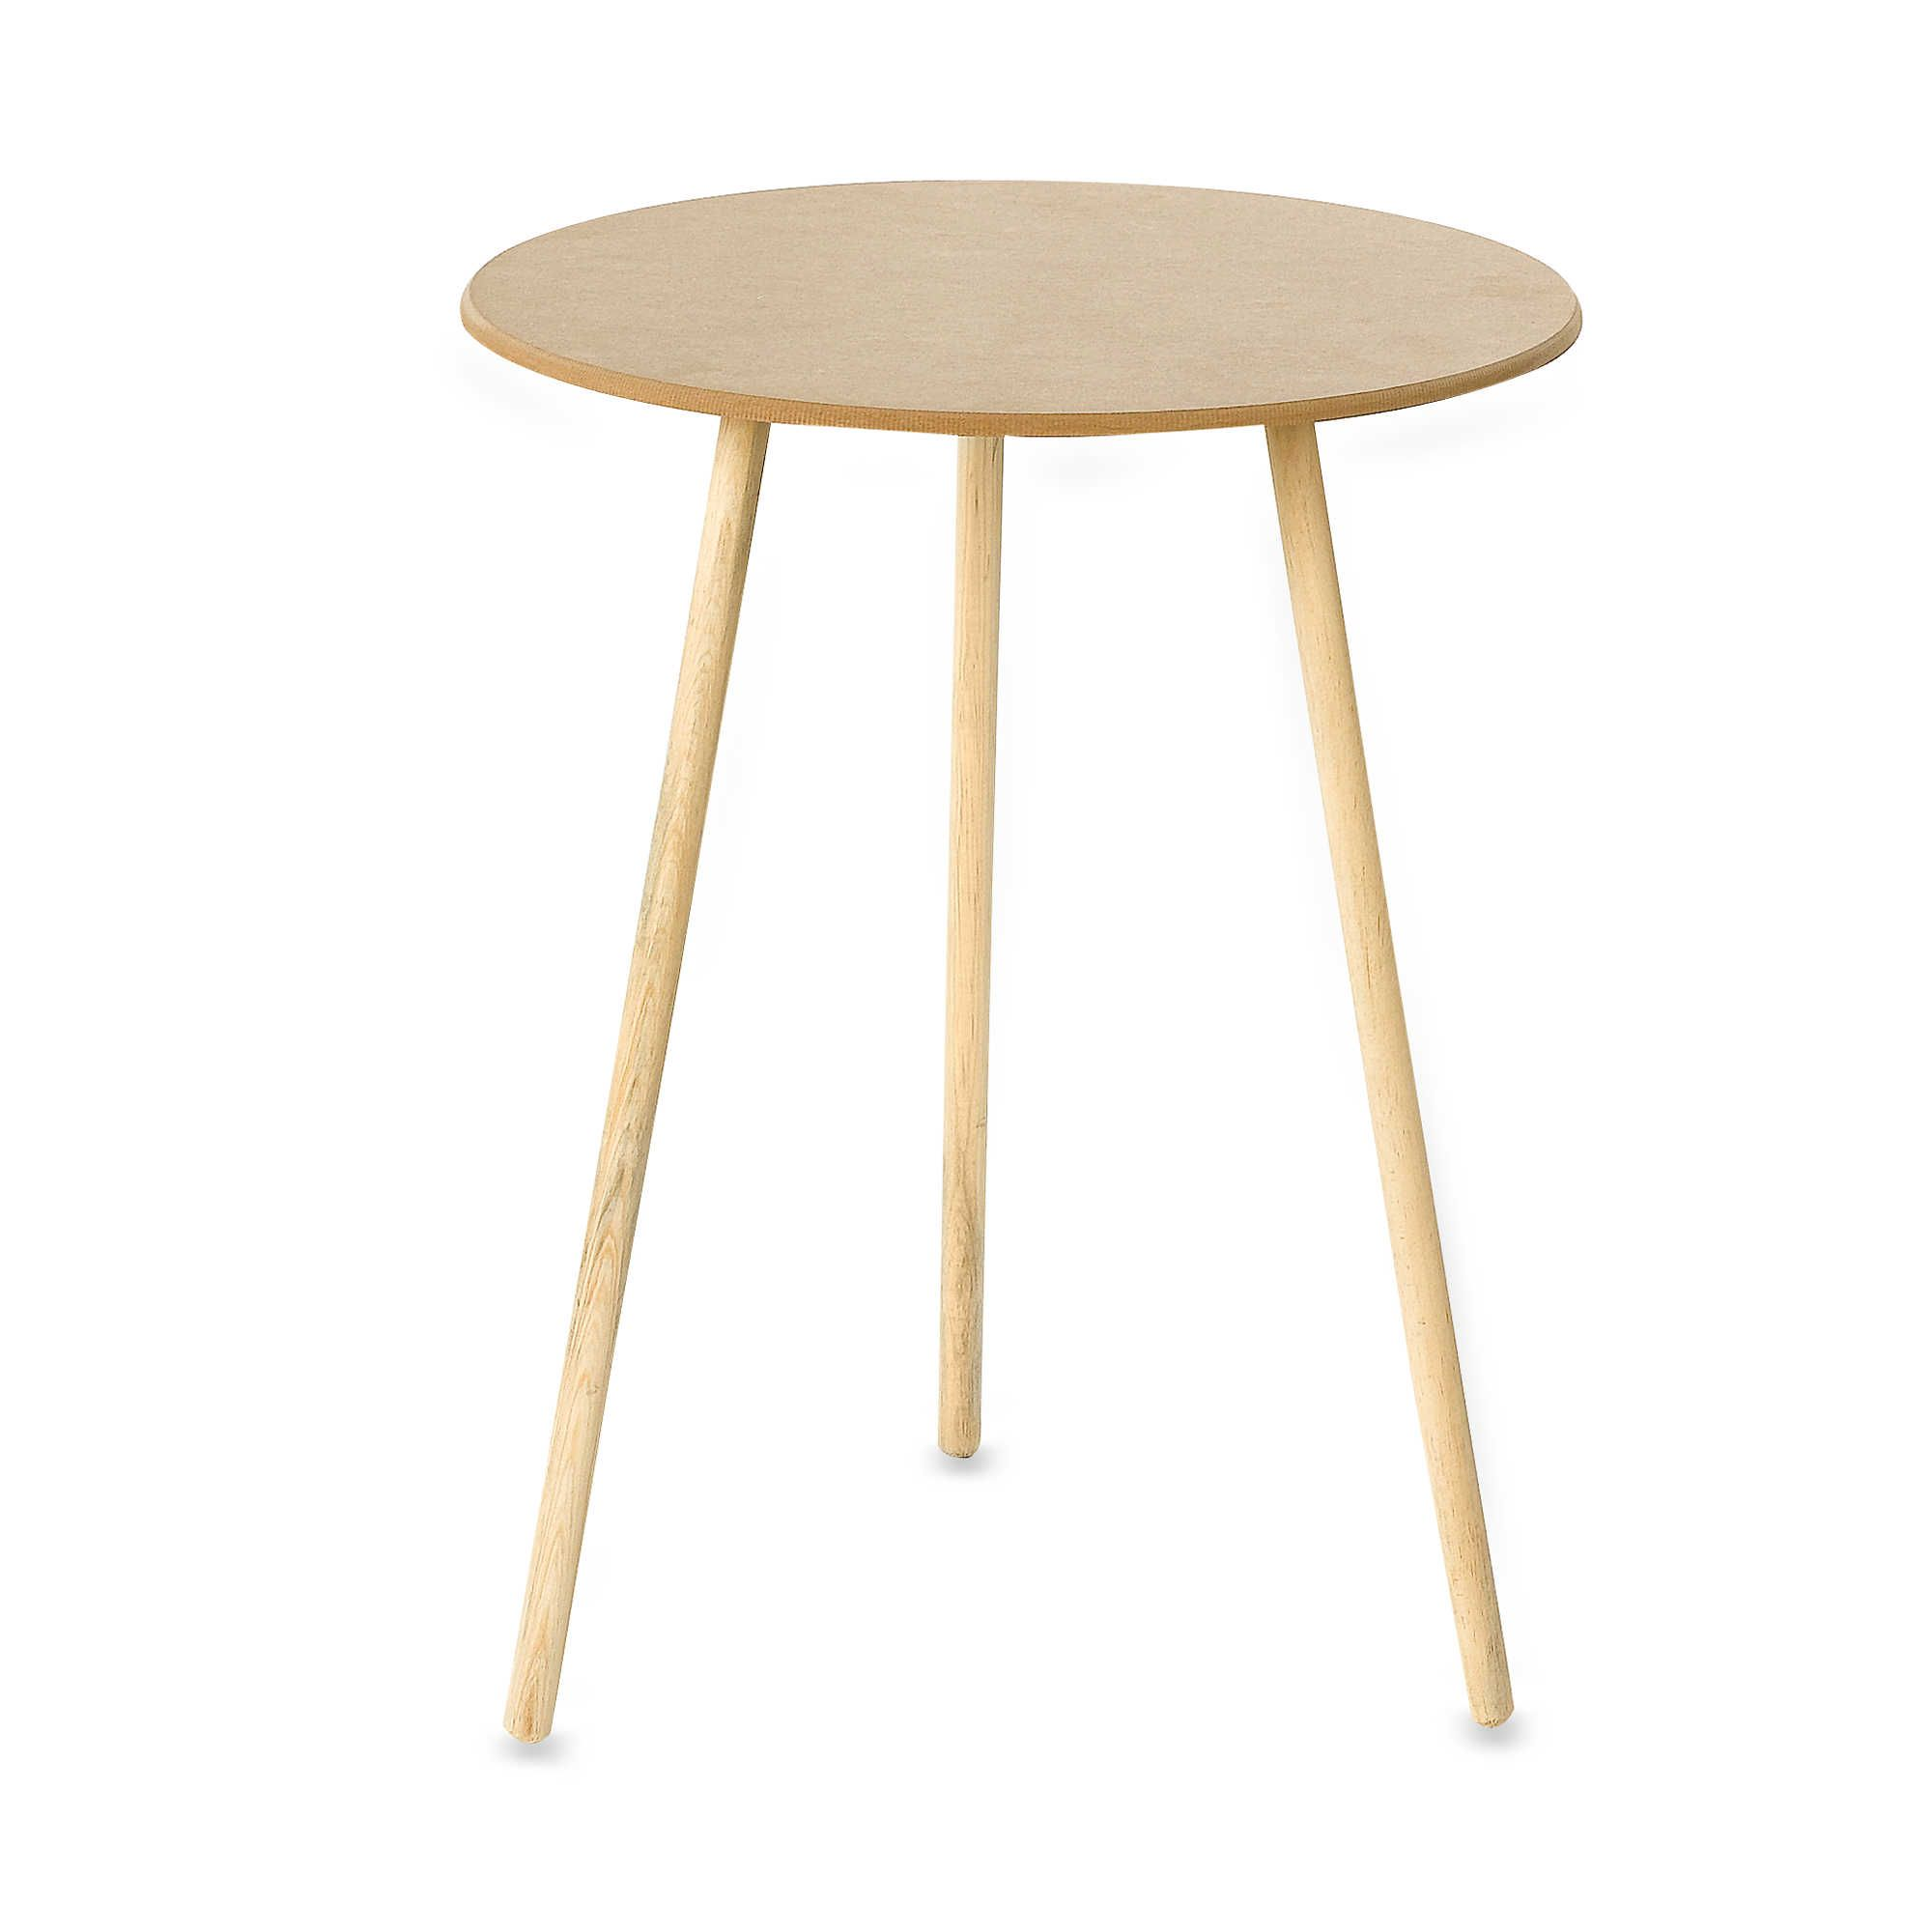 inch round decorator table new room decor accent with tablecloth peekaboo acrylic coffee better homes and gardens side small silver garden furniture stainless steel end height